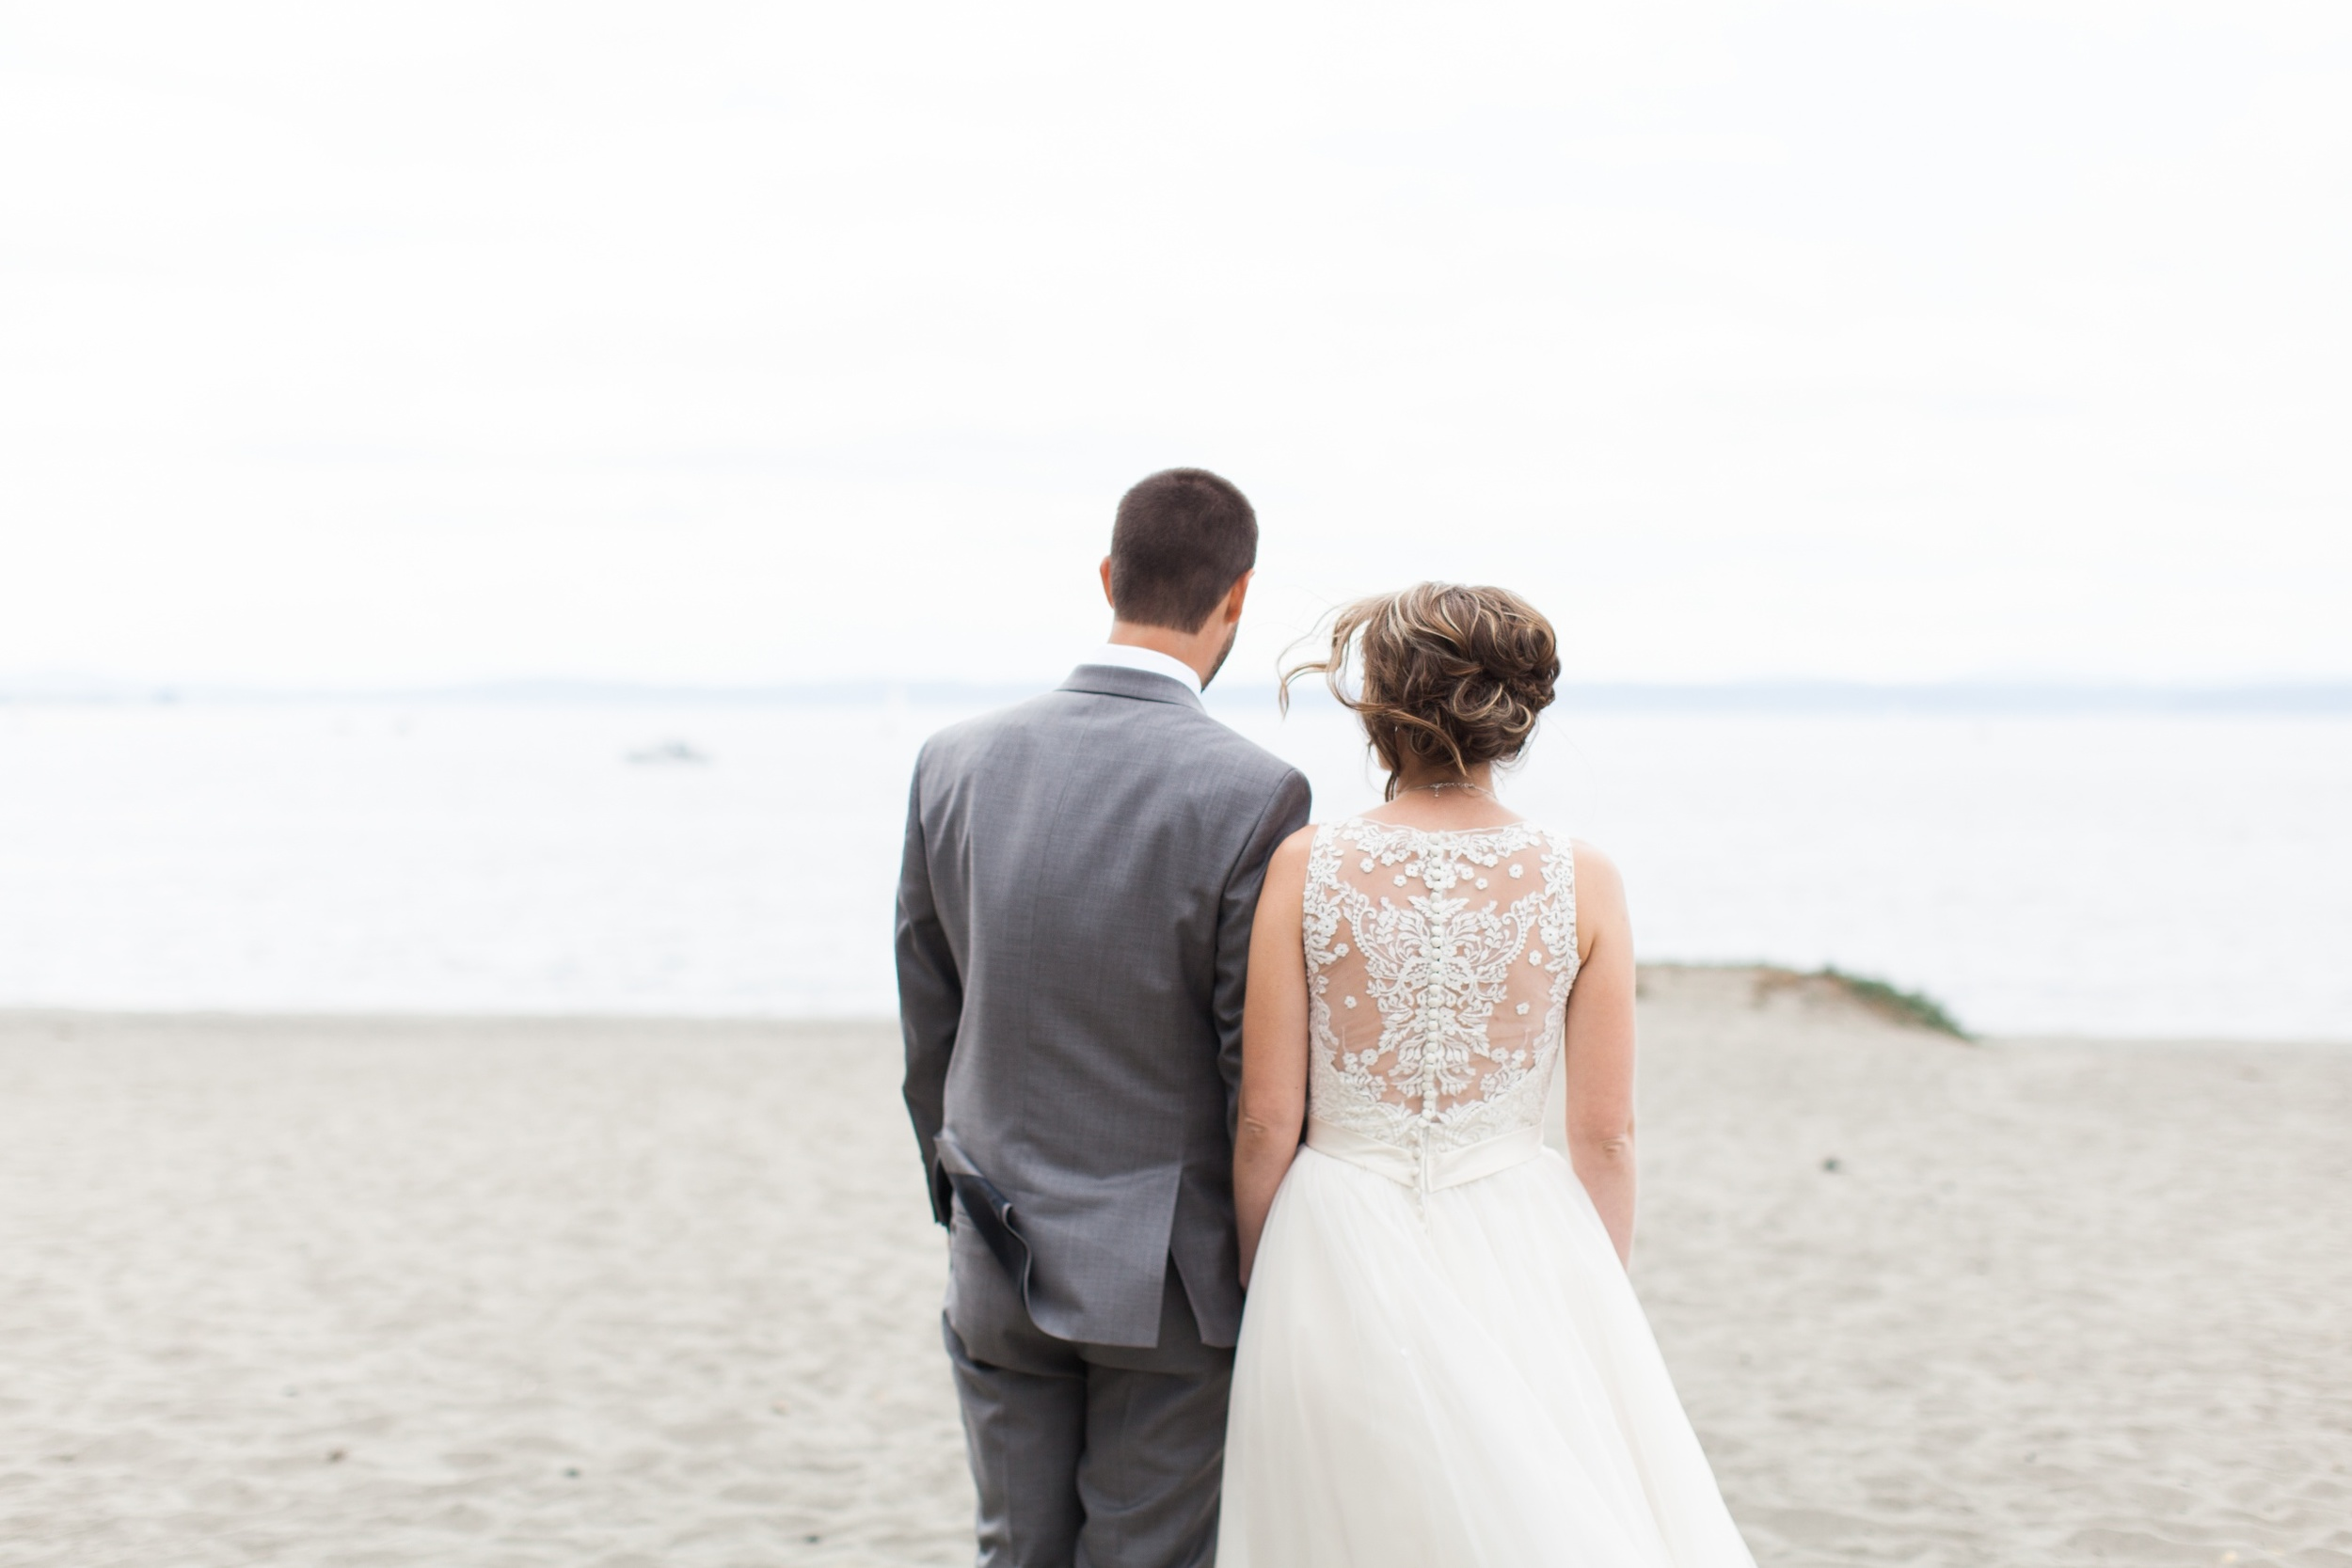 Seattle wedding photographer film photography golden garden gardens state park ocean beach sand grass wind boat house boathouse bride and groom looking out at ocean pudget sound